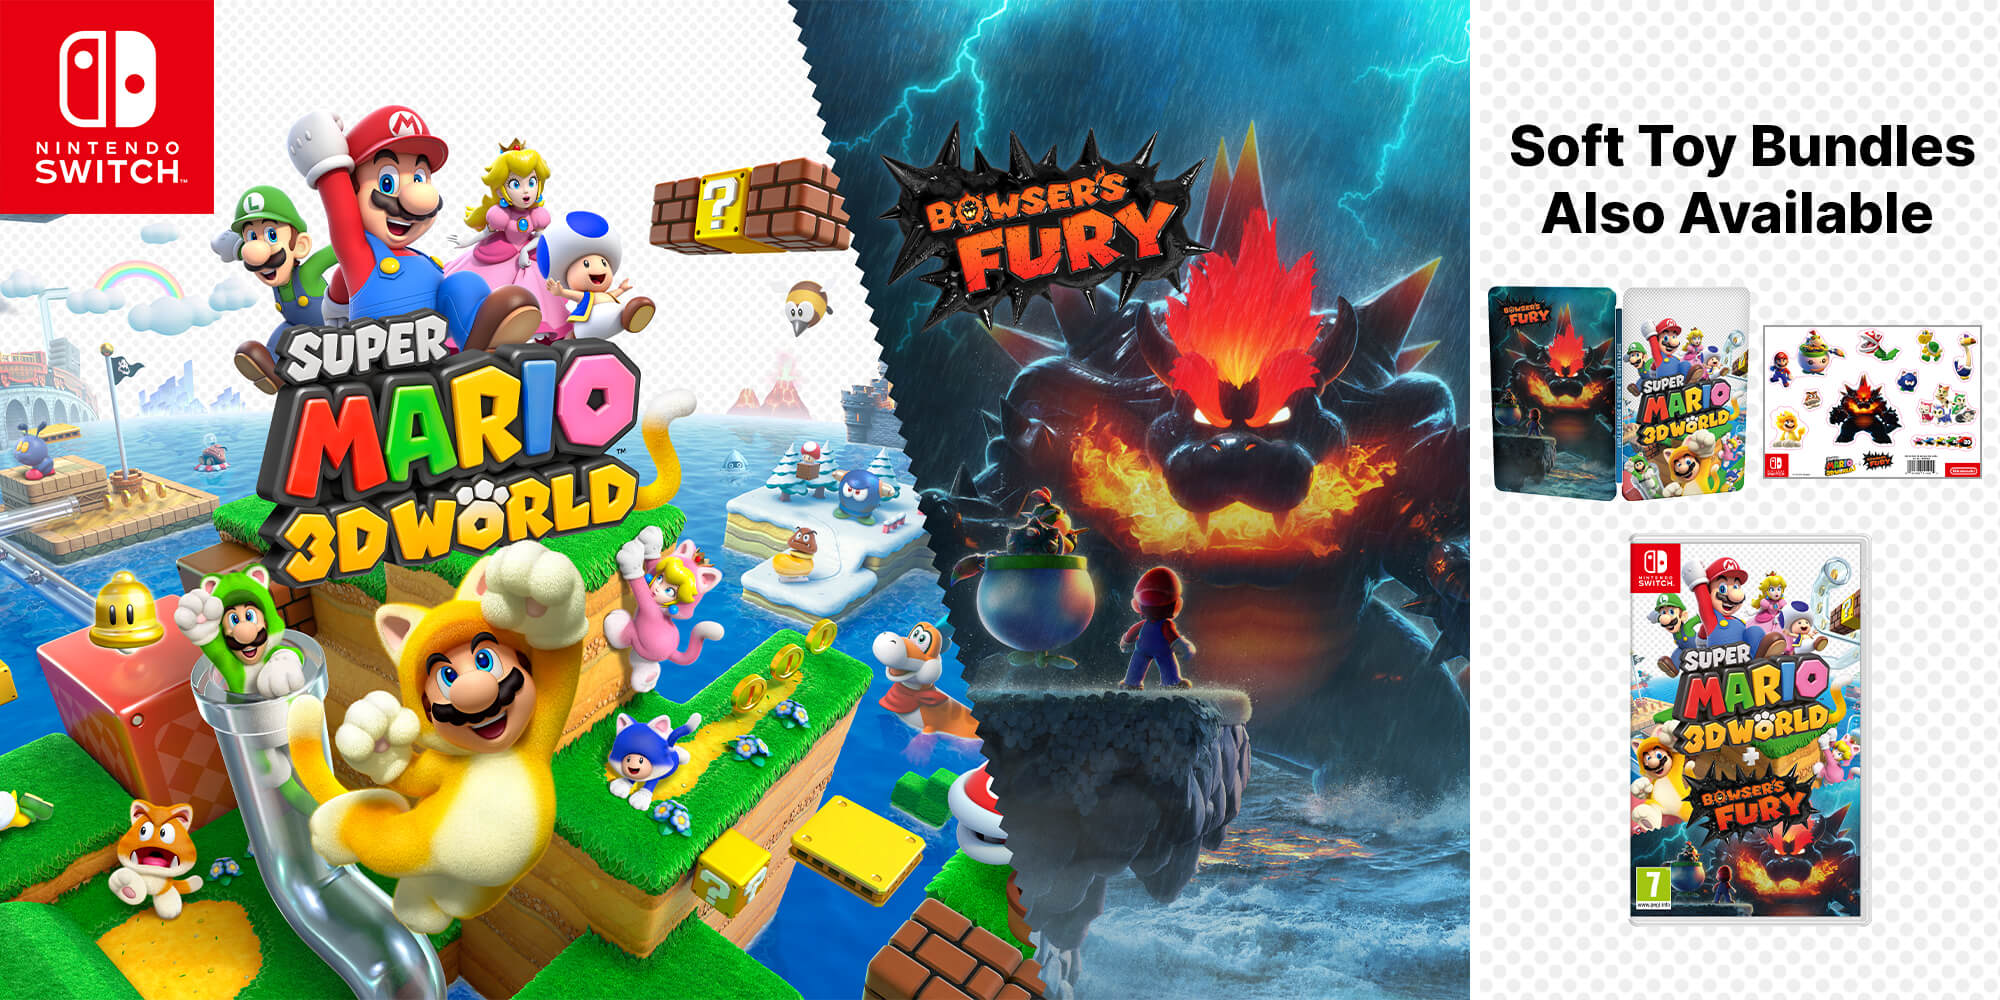 Nintendo Switch Mario Red & Blue Edition, Super Mario 3D World + Bowser's Fury